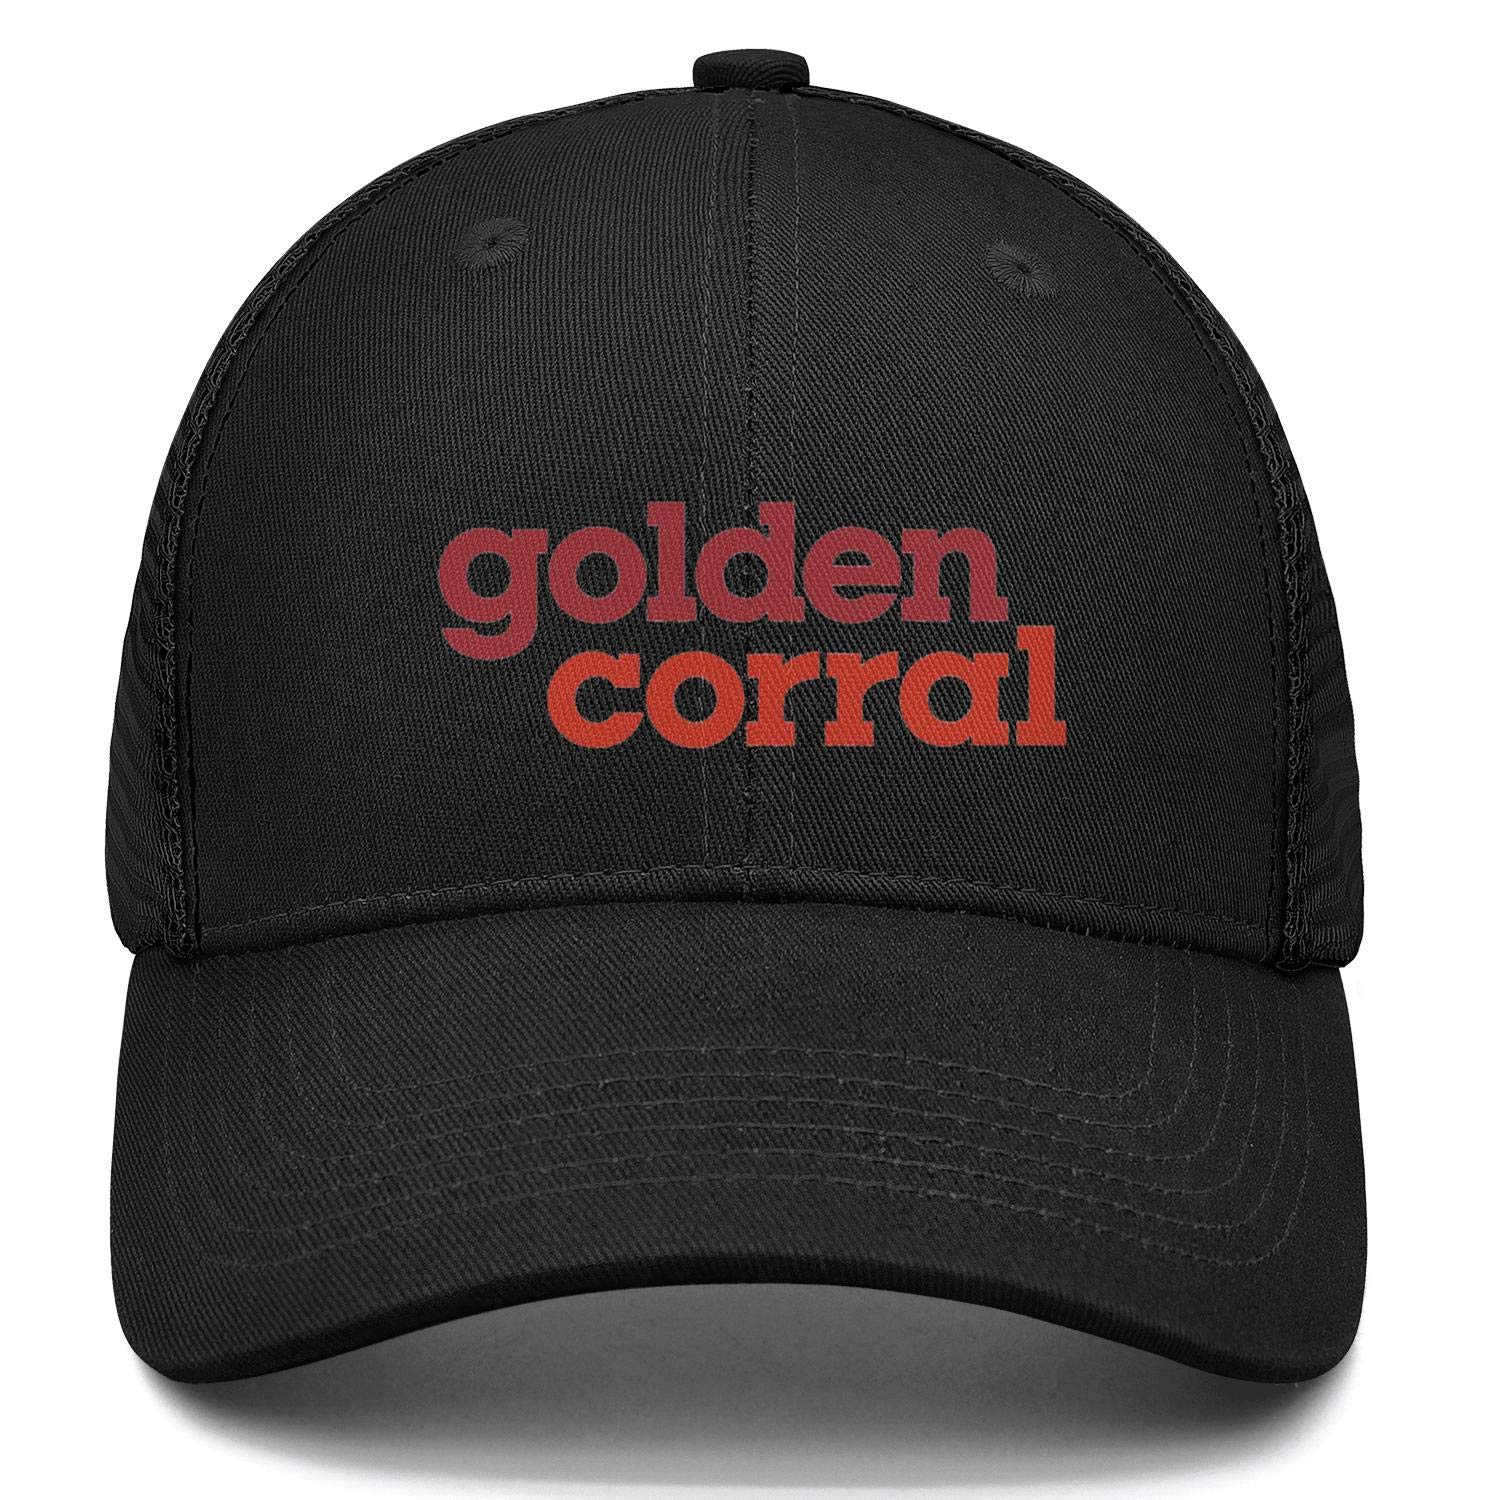 WintyHC Golden Corral Logo Cowboy Hat Trucker Hat One Size Baseball Cap